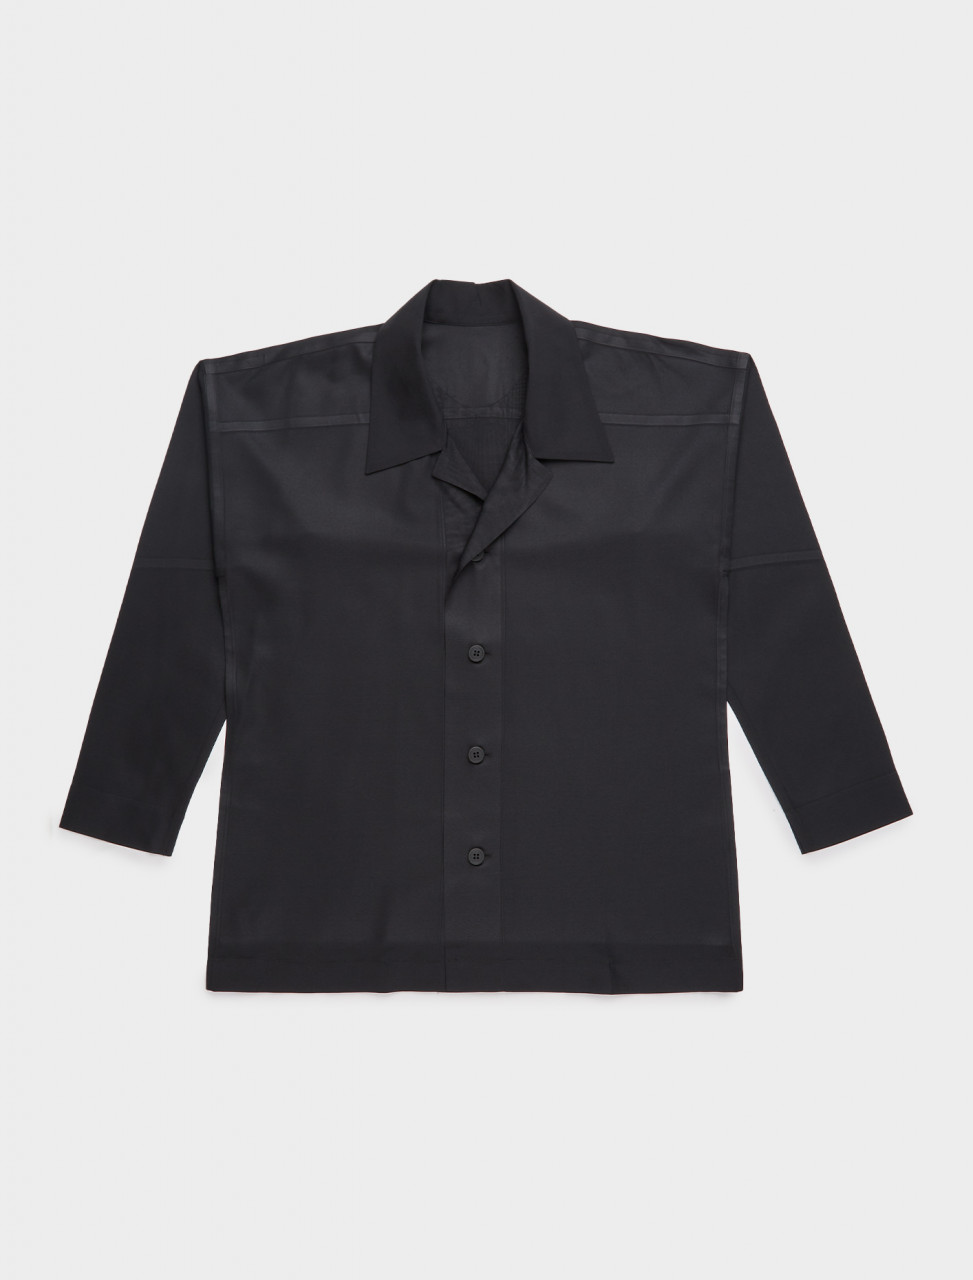 HP09FJ020-13 HOMME PLISSE ISSEY MIYAKE PLEATED PRESS SHIRT CHARCOAL